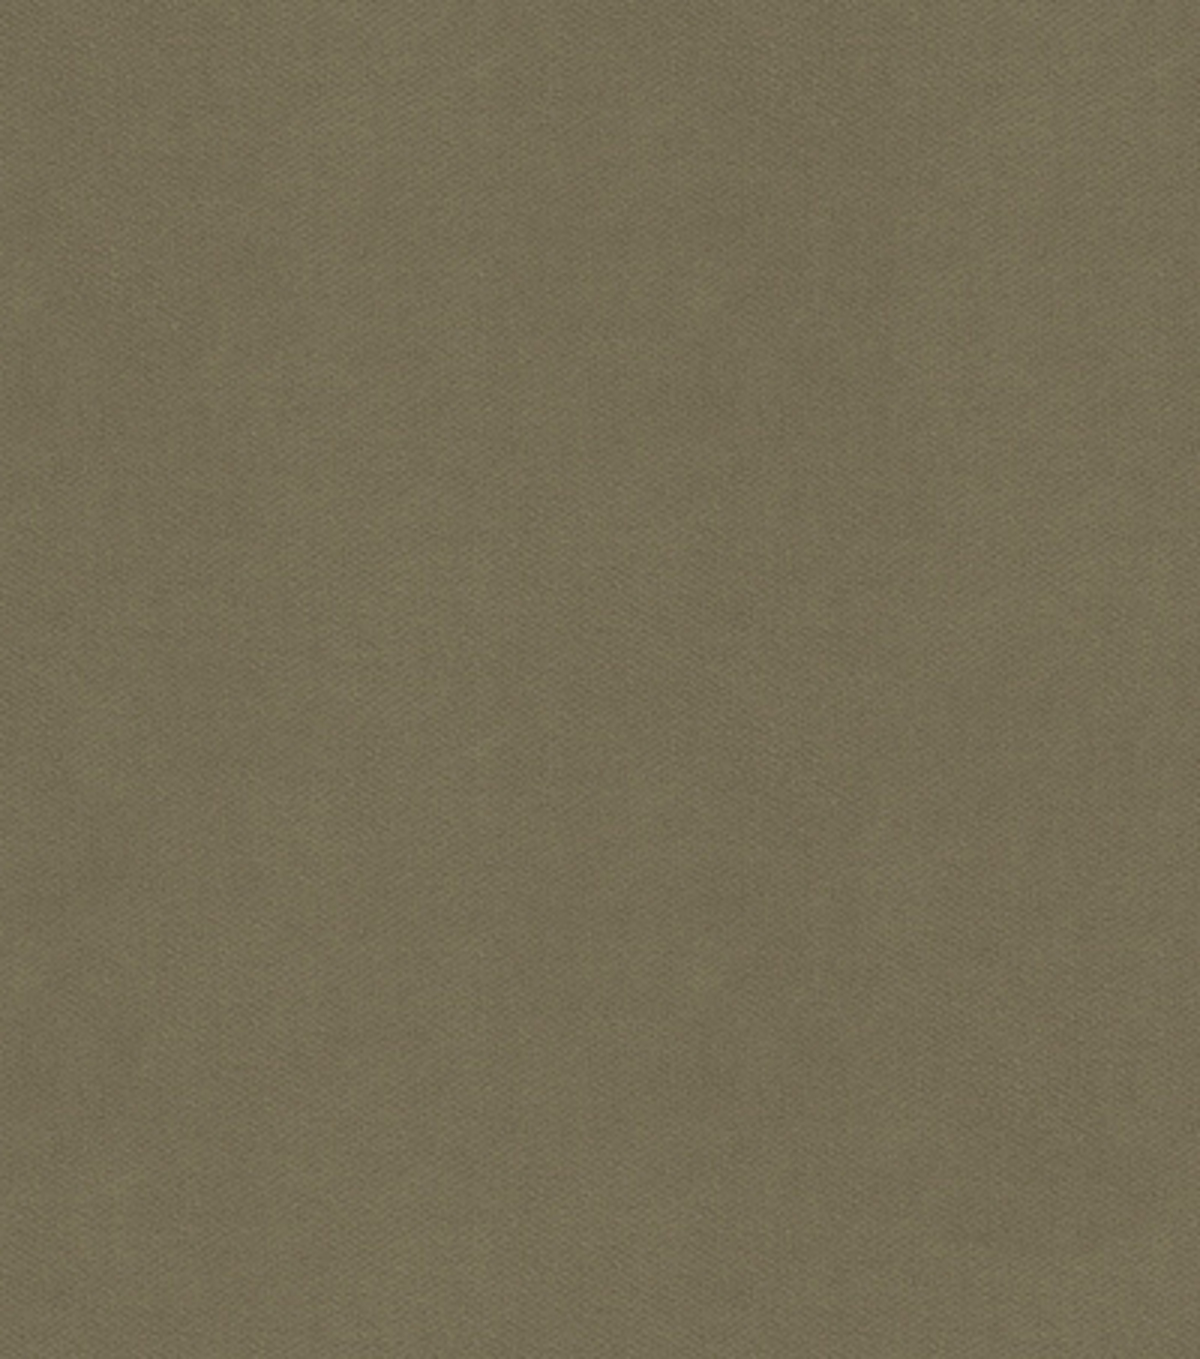 Home Decor 8\u0022x8\u0022 Fabric Swatch-Como-643-Artichoke